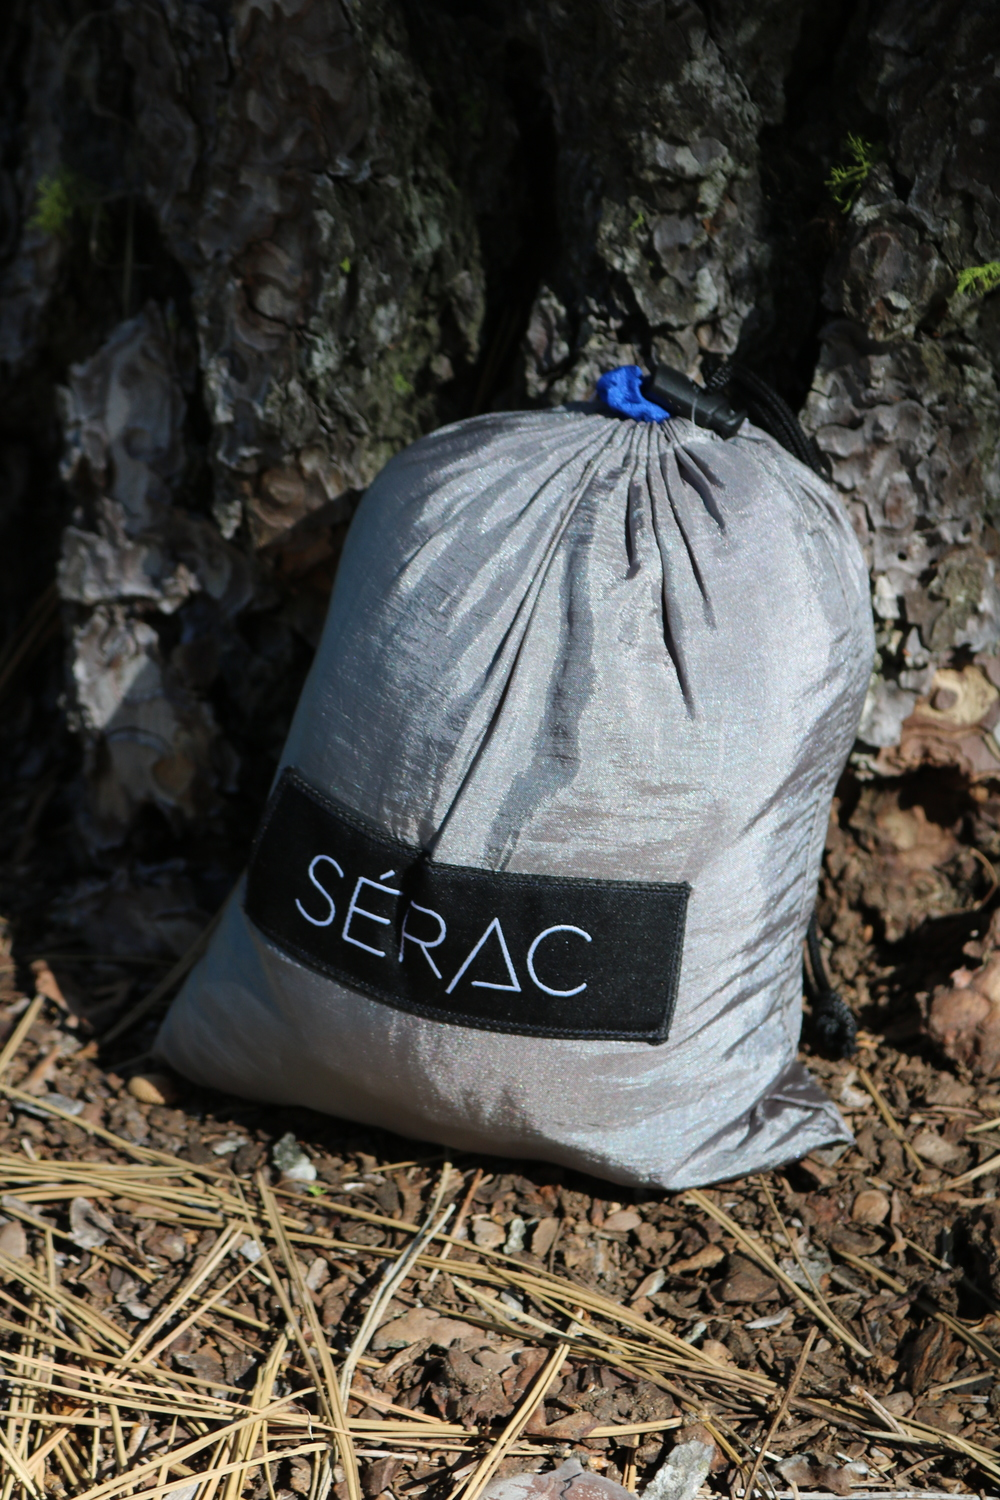 The Serac Classic Camping Hammock breaks down and fits in a lightweight bag.